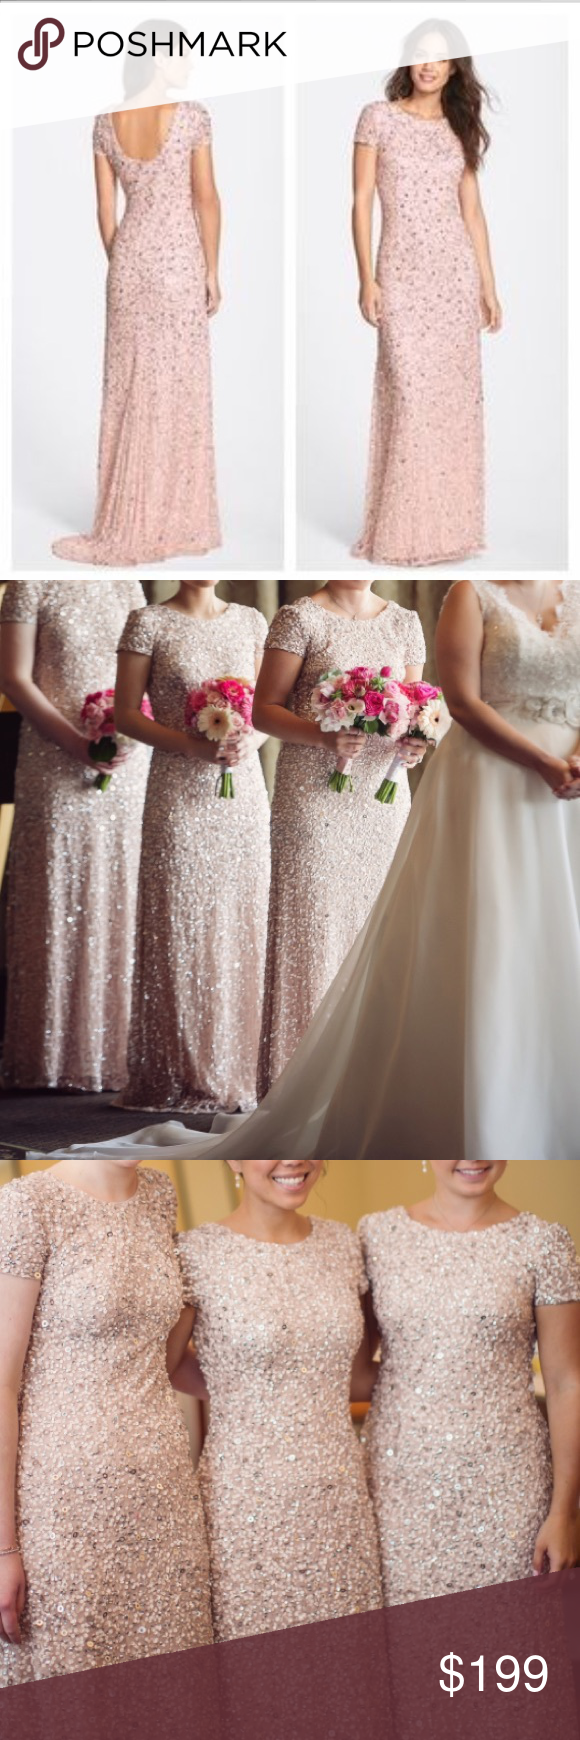 Short Sleeve Sequin Mesh Gown Blush  Indoor wedding Petite sizes